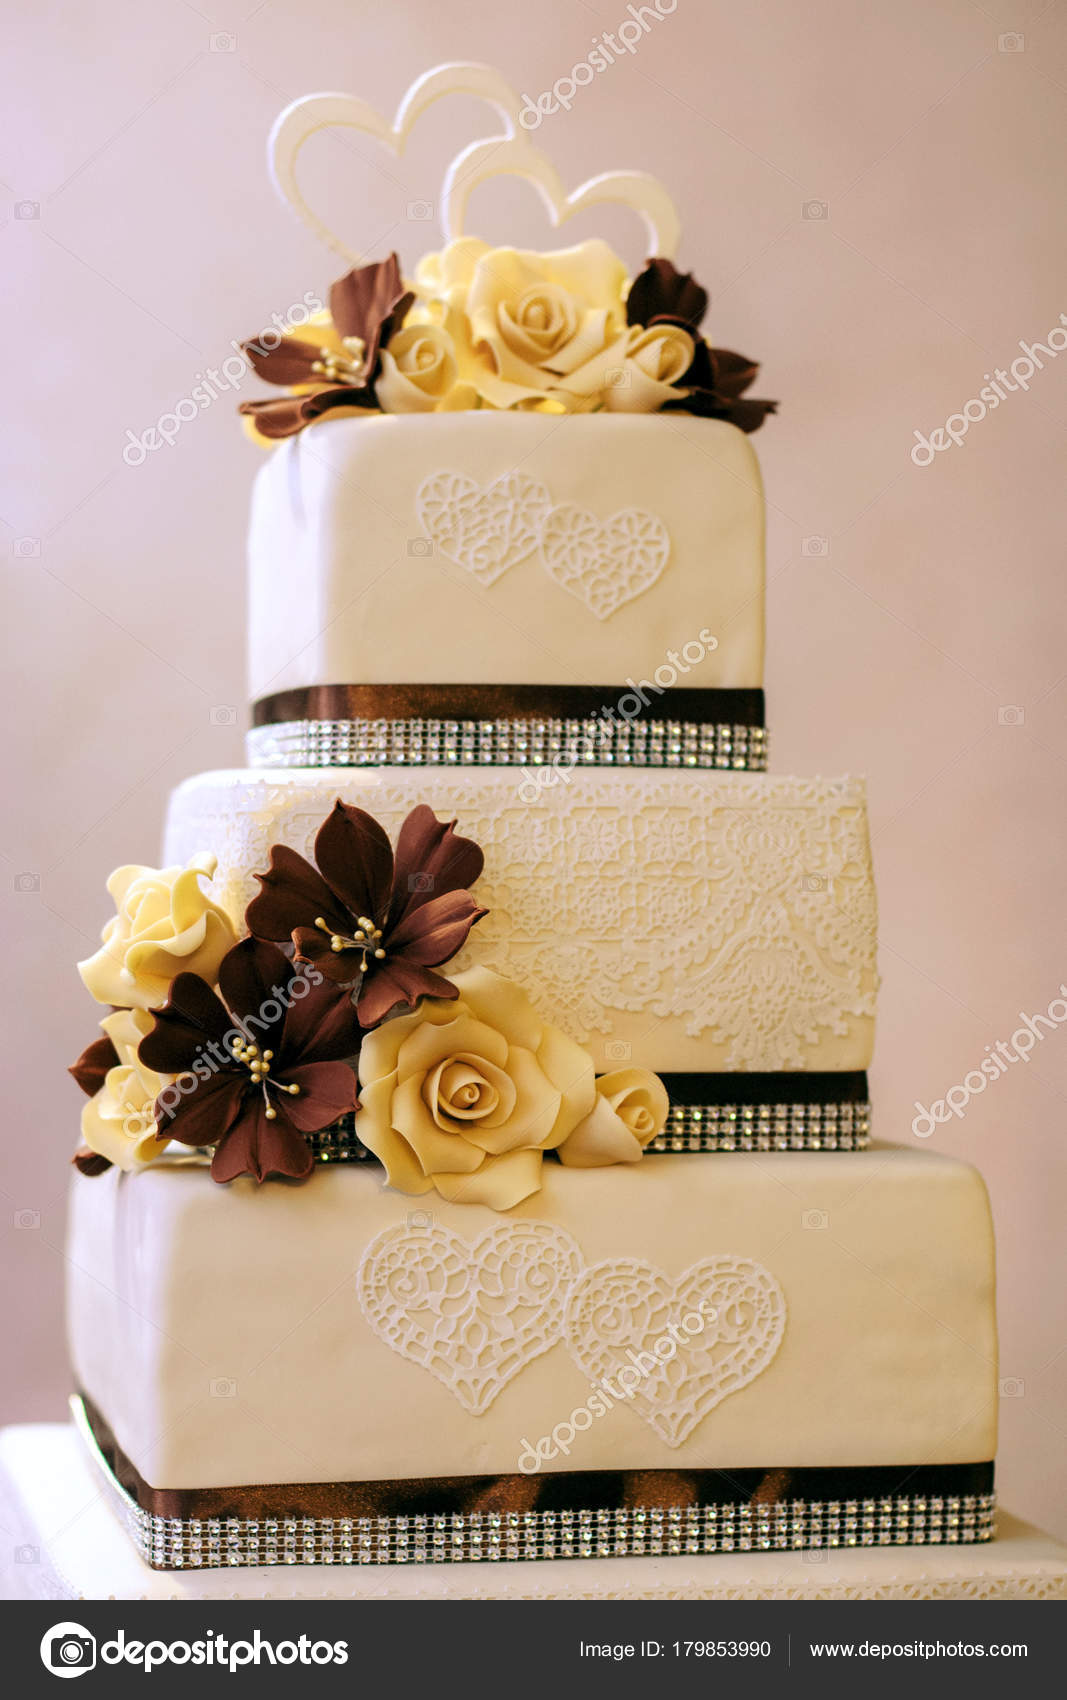 Phenomenal Images Most Beautiful Bday Cakes Most Beautiful Delicious Cake Funny Birthday Cards Online Barepcheapnameinfo